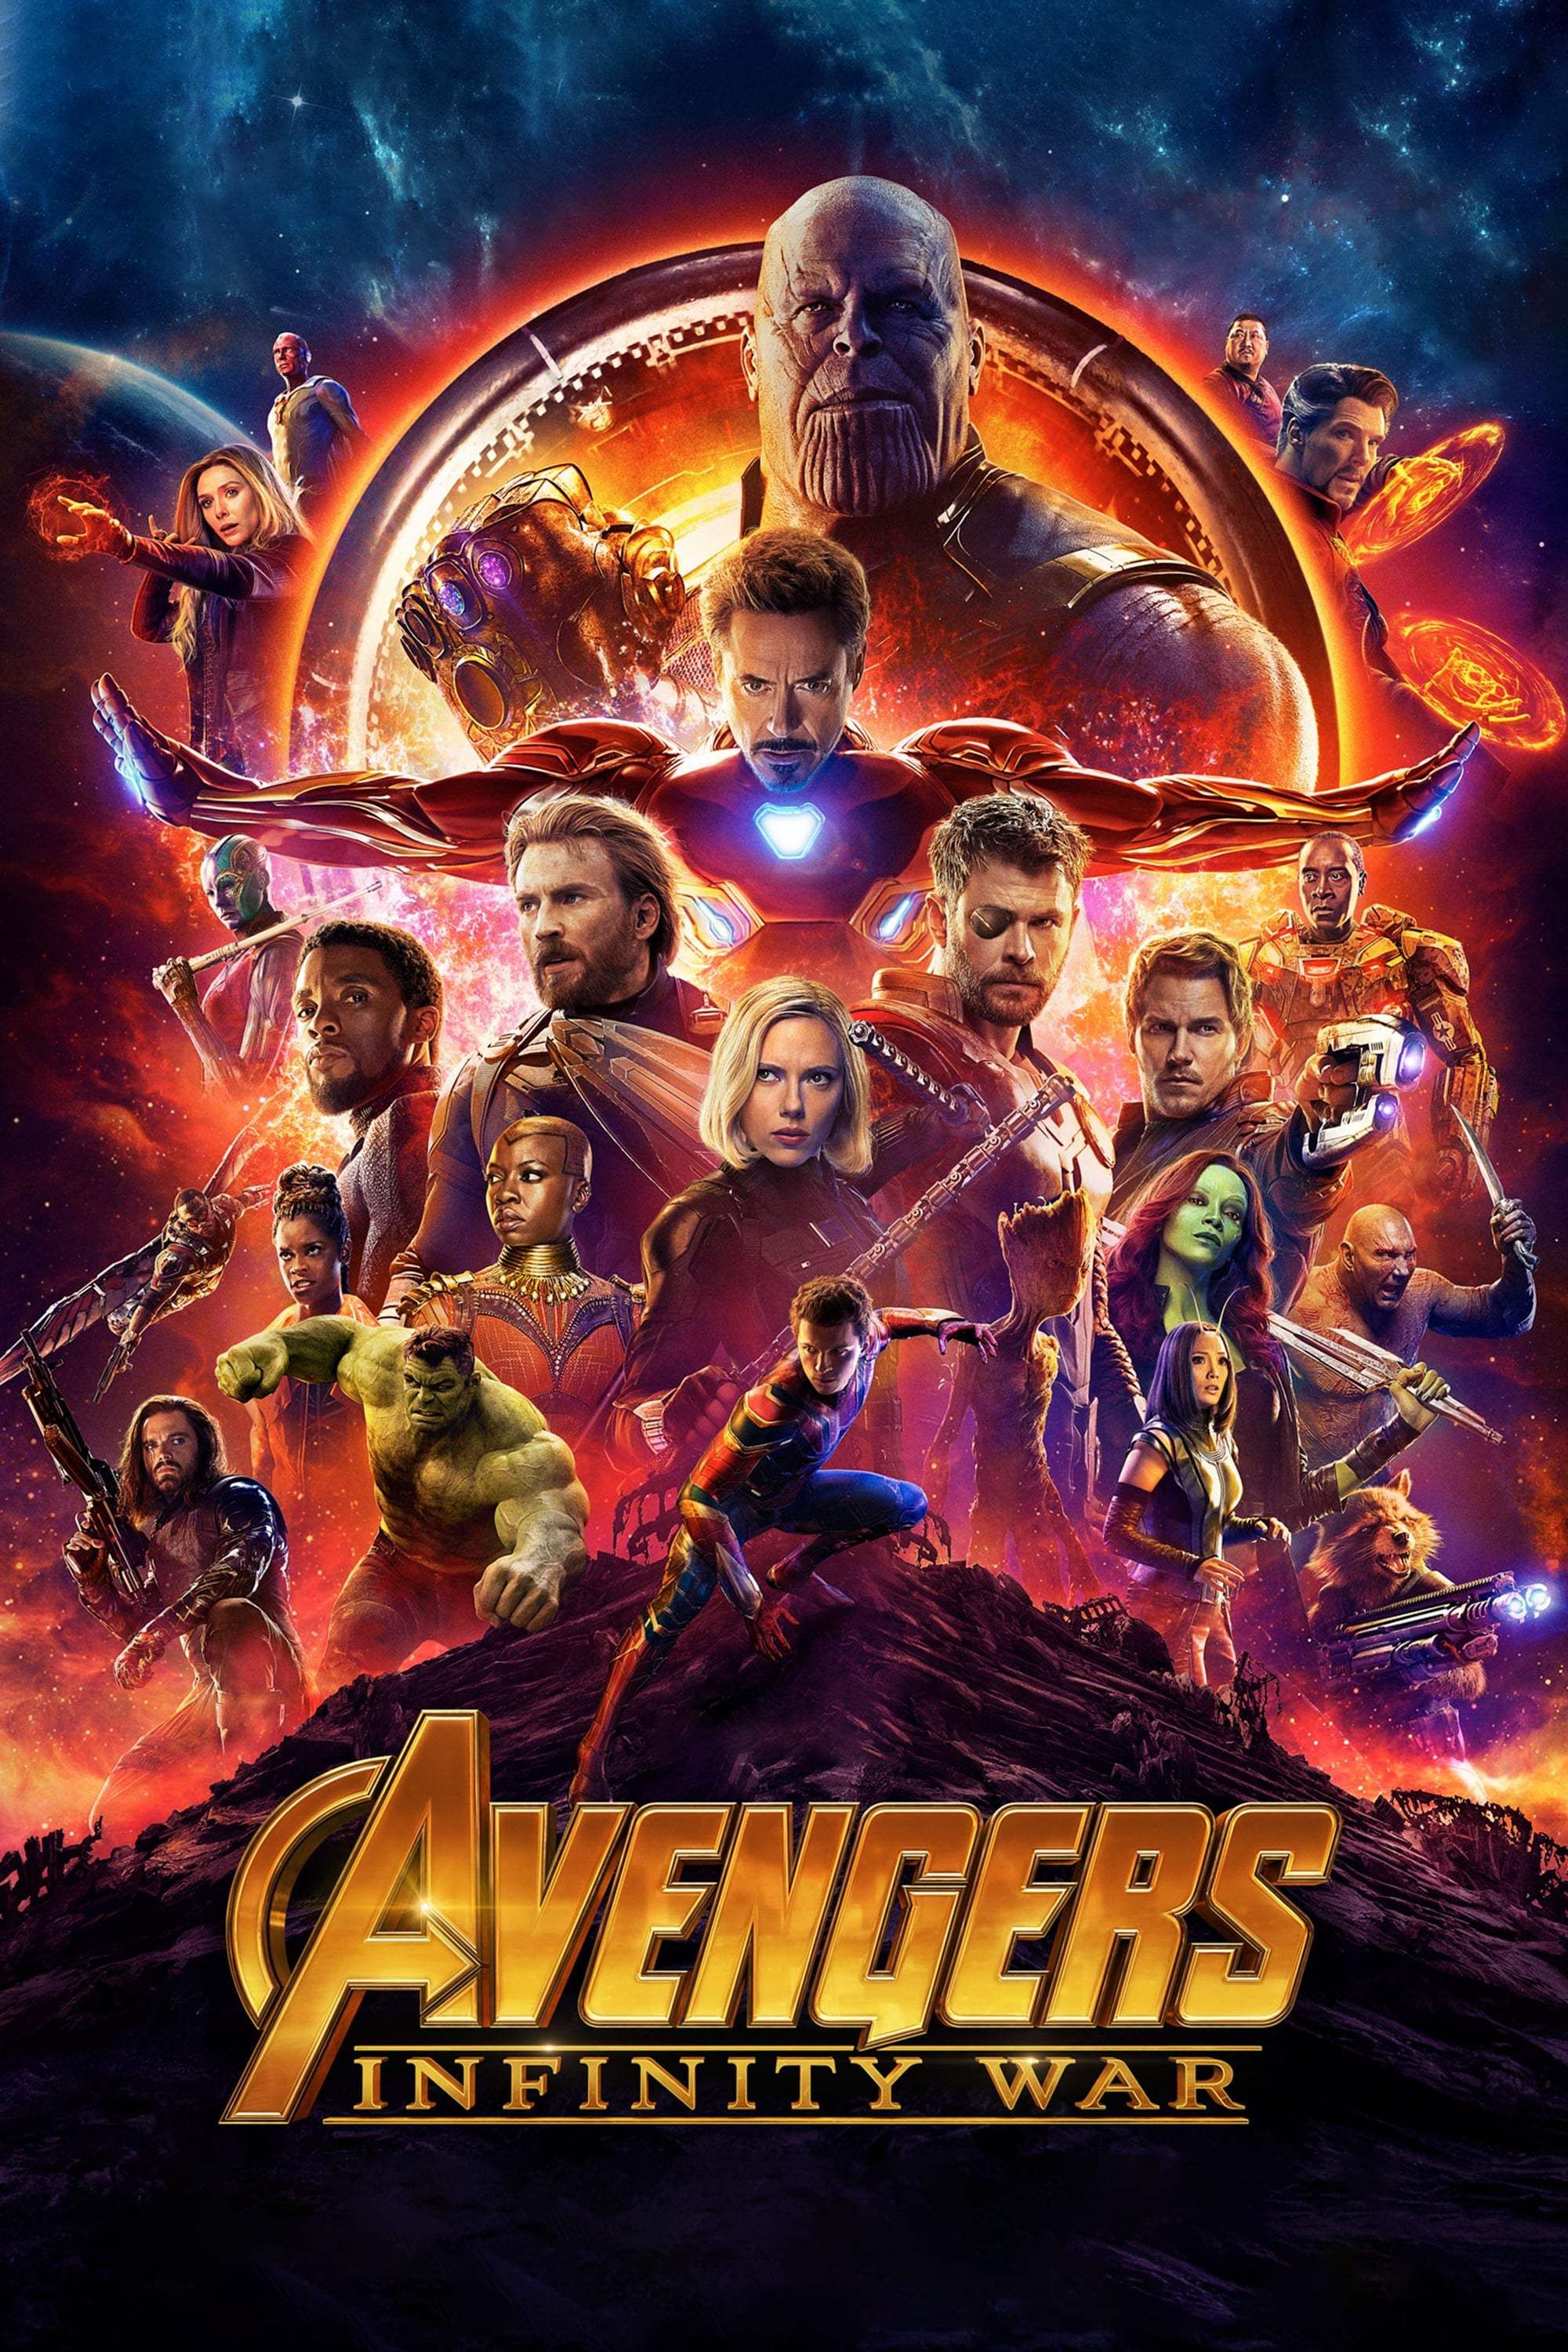 Nonton Avengers: Infinity Wars (2018) Subtitle Indonesia - Dunia21